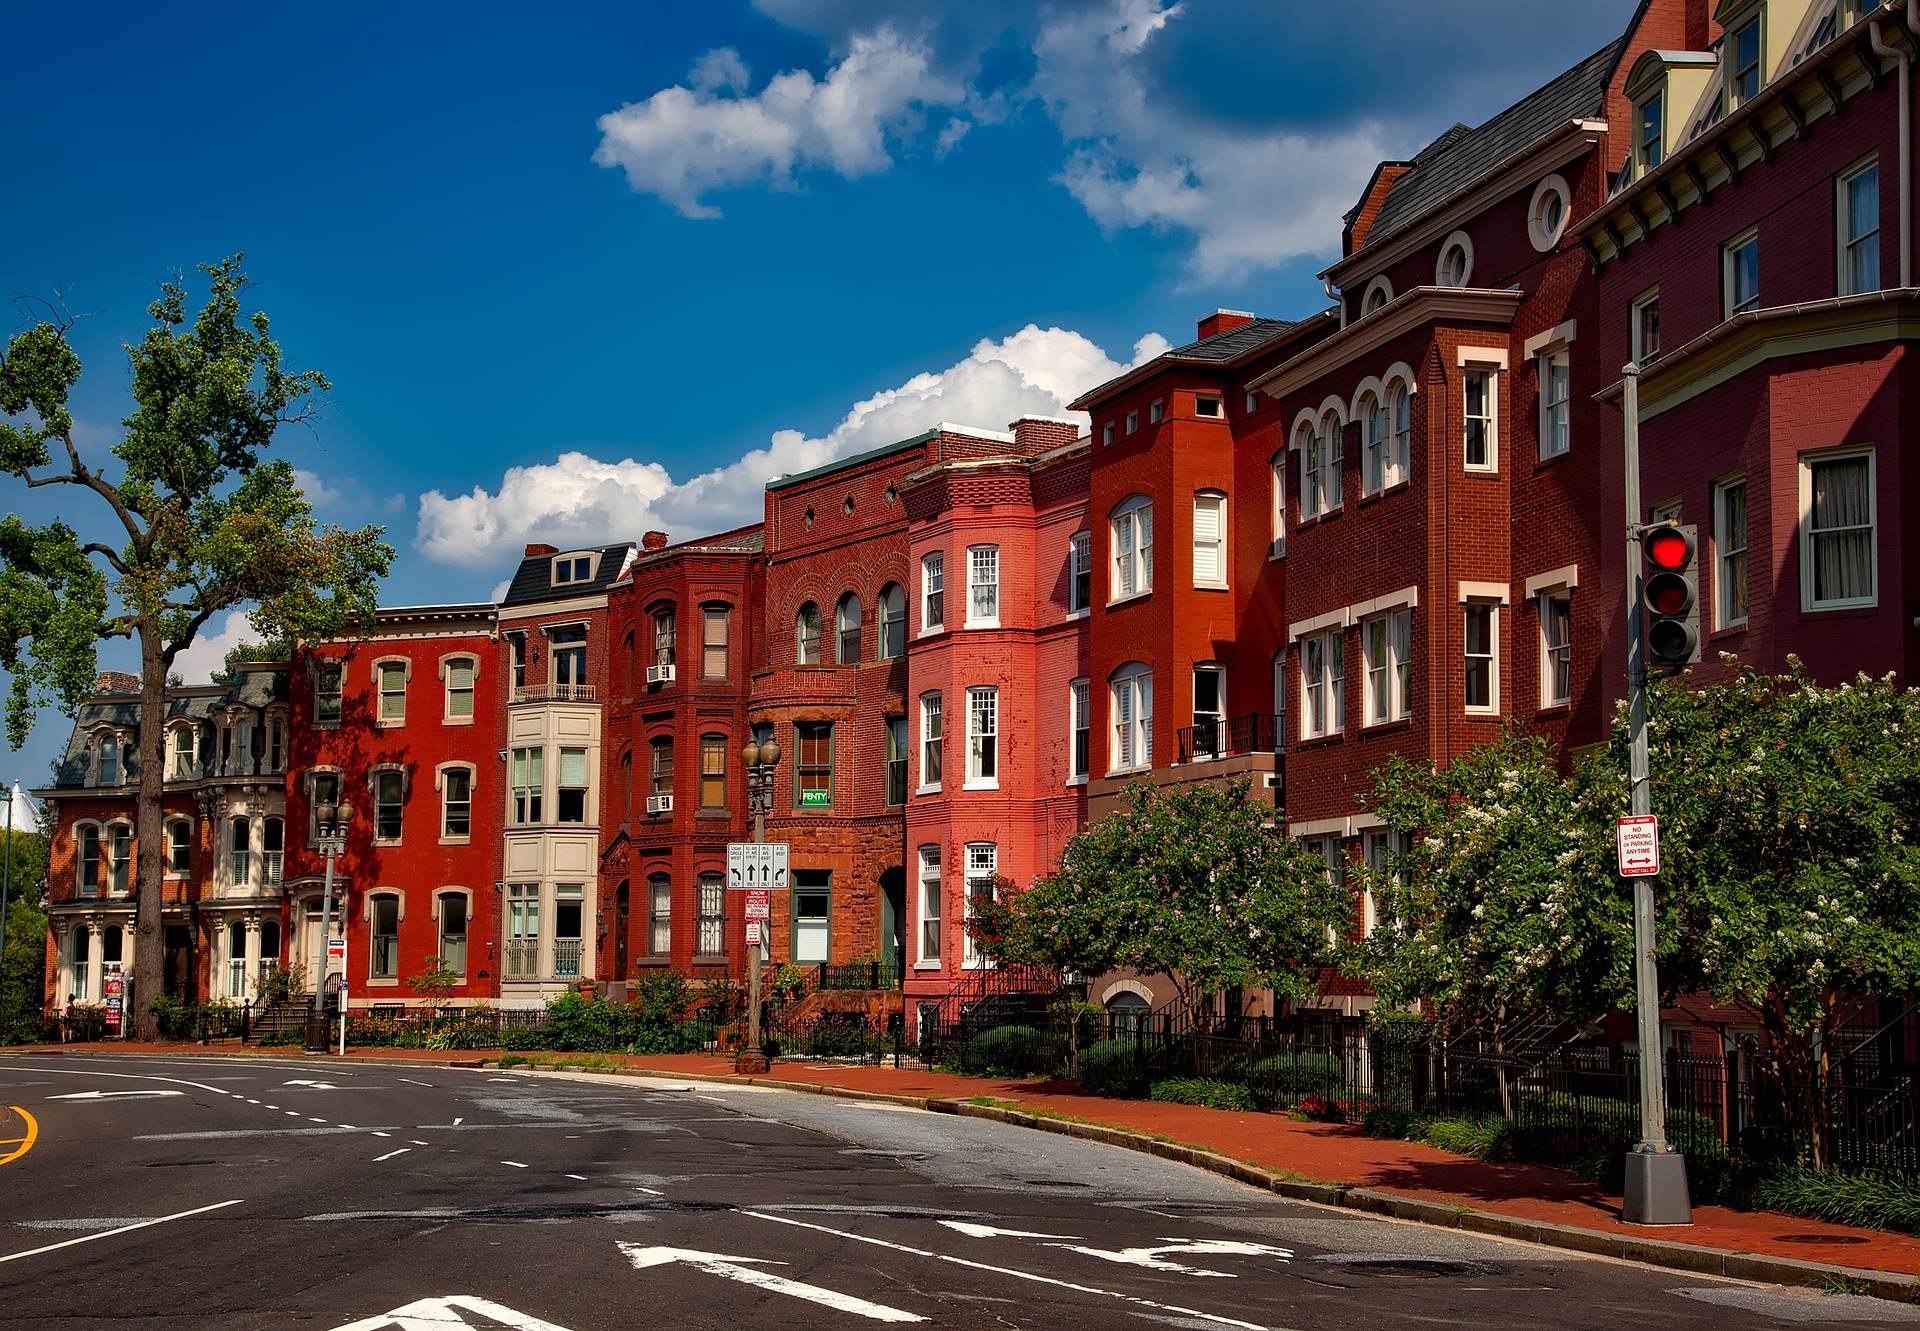 Washington, D.C. red brick rowhouses on sunny day